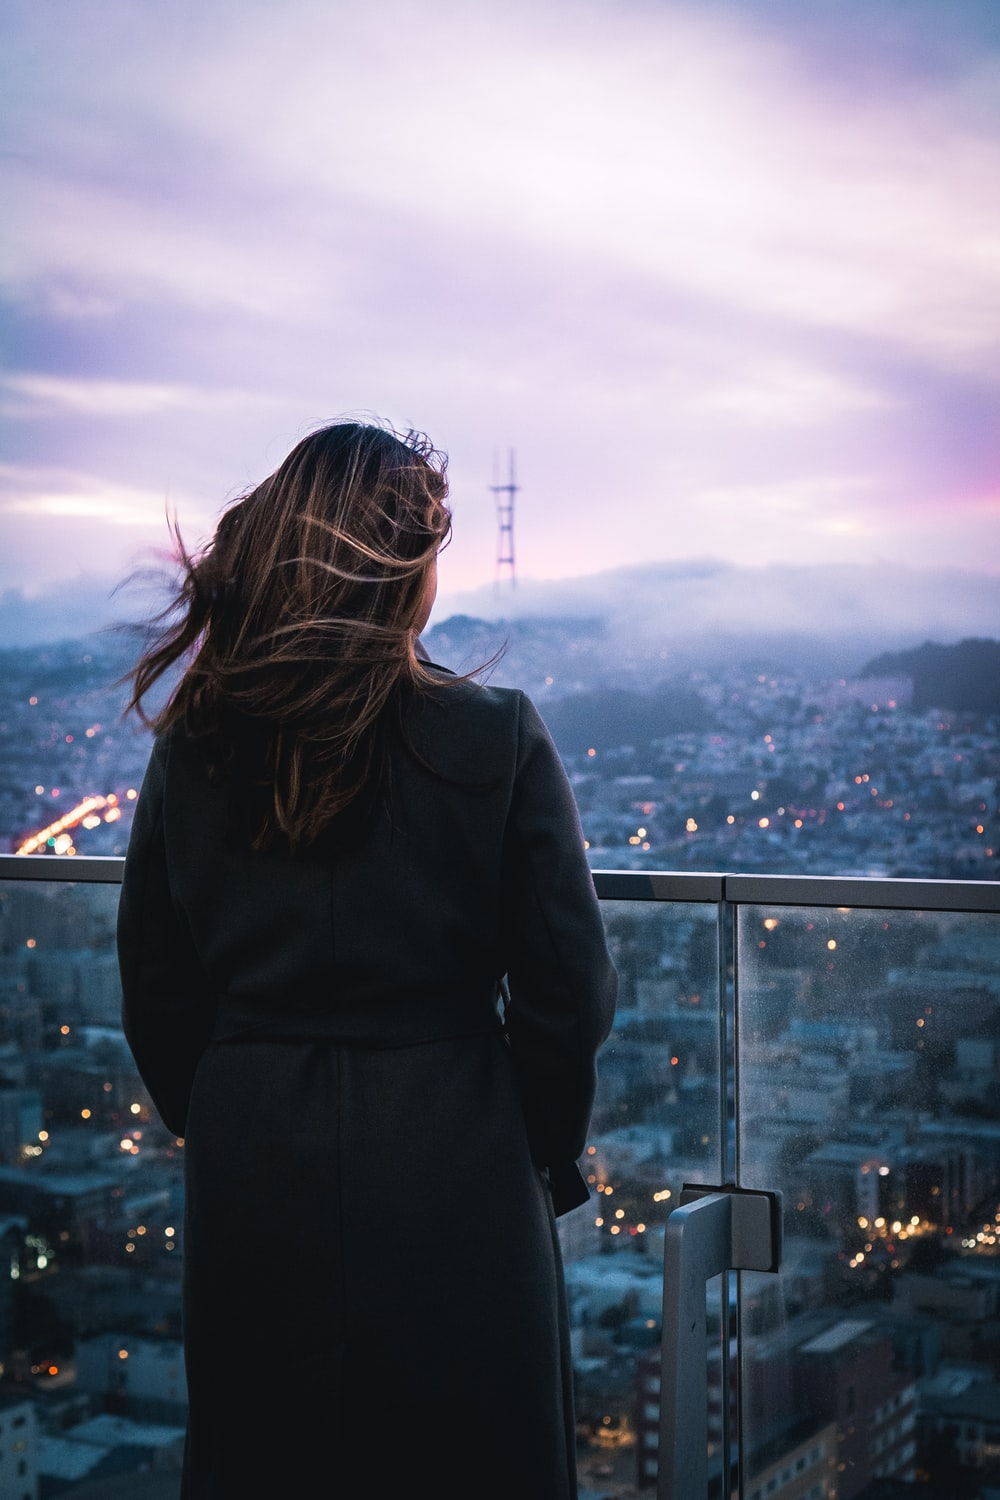 woman in black coat standing on top of building looking at the city during daytime